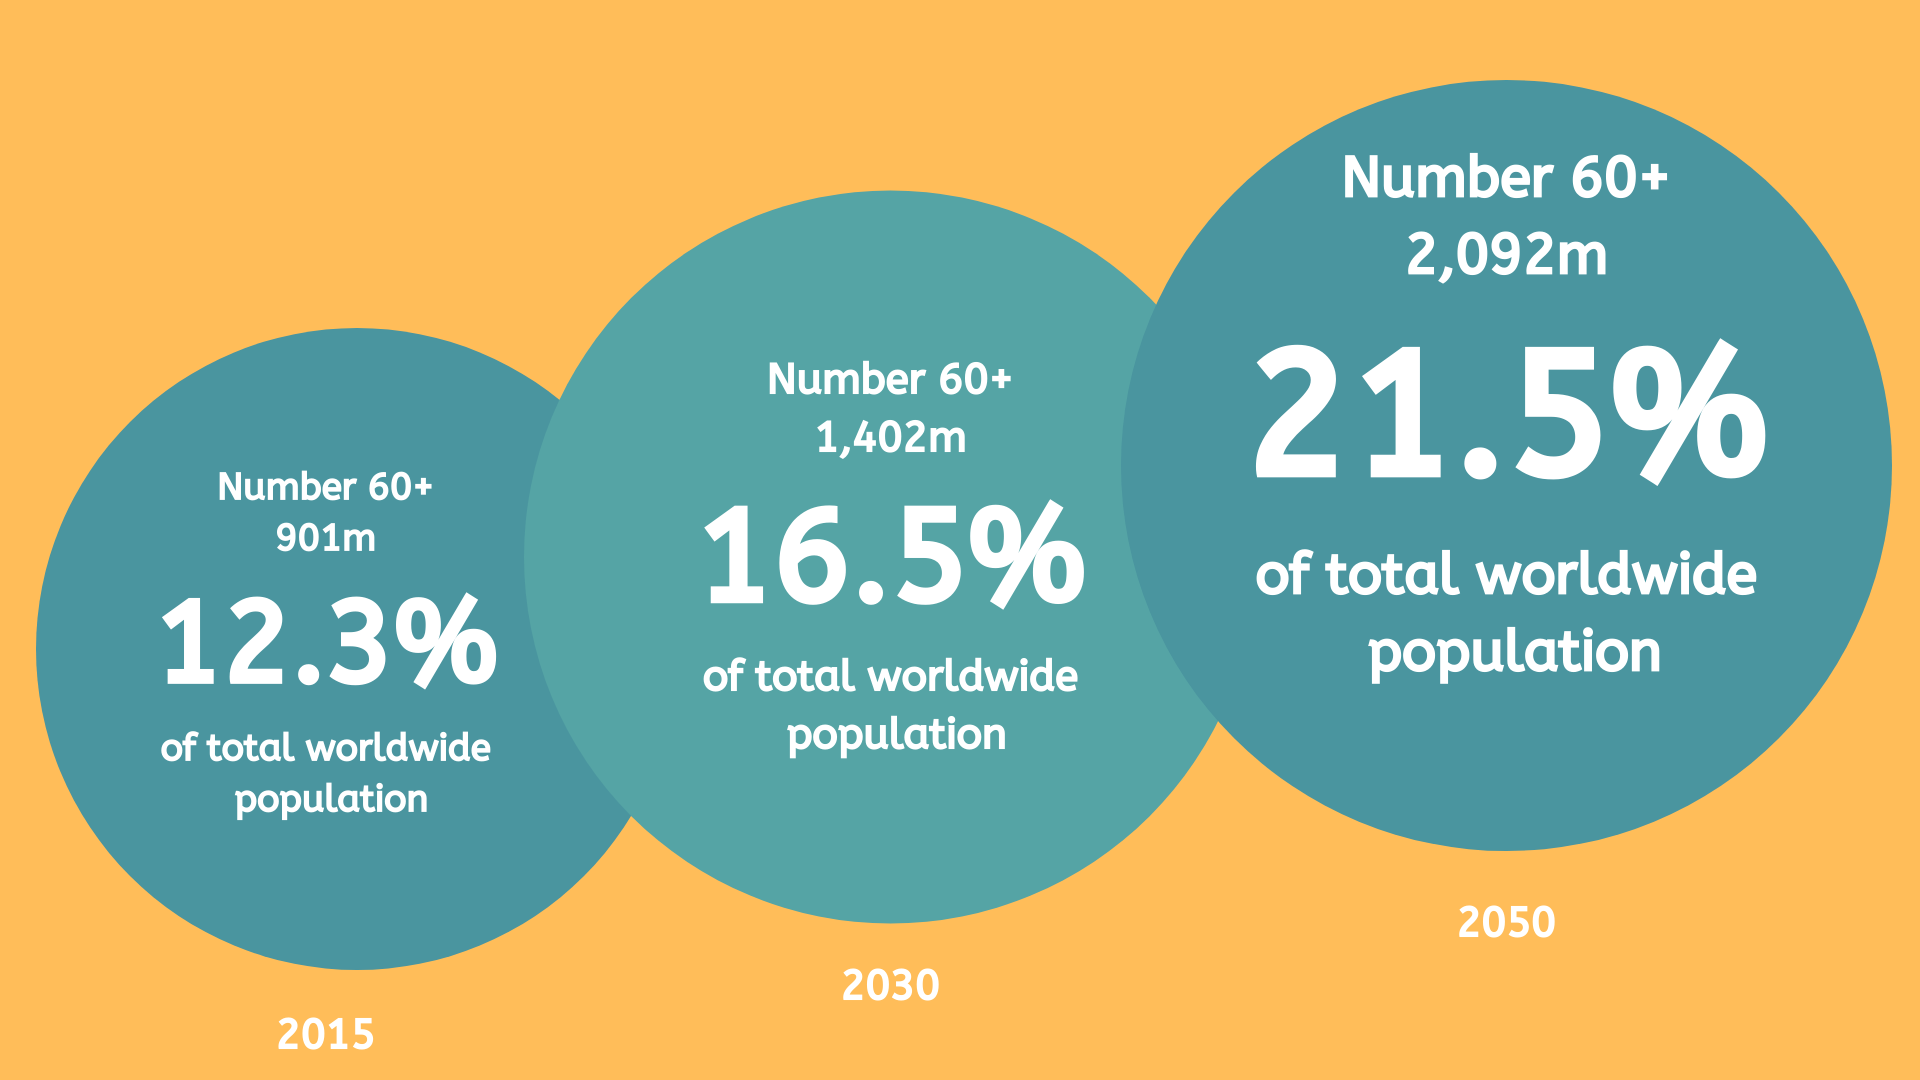 Projections for the number and proportion of older people globally in 2015, 2030 and 2050.